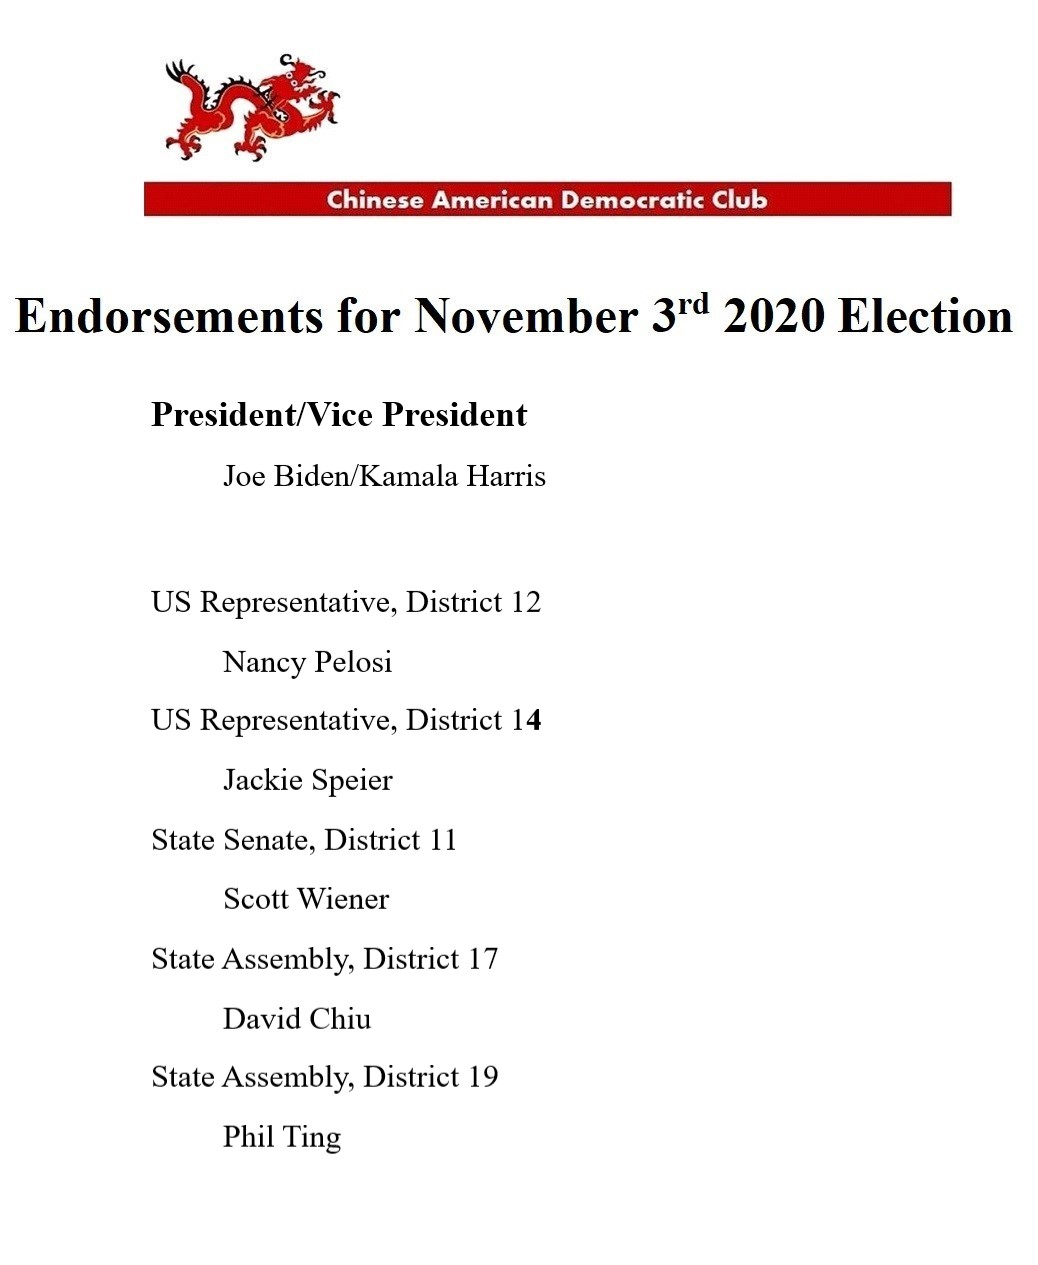 Endorsements_11-2020_Candidates.jpg